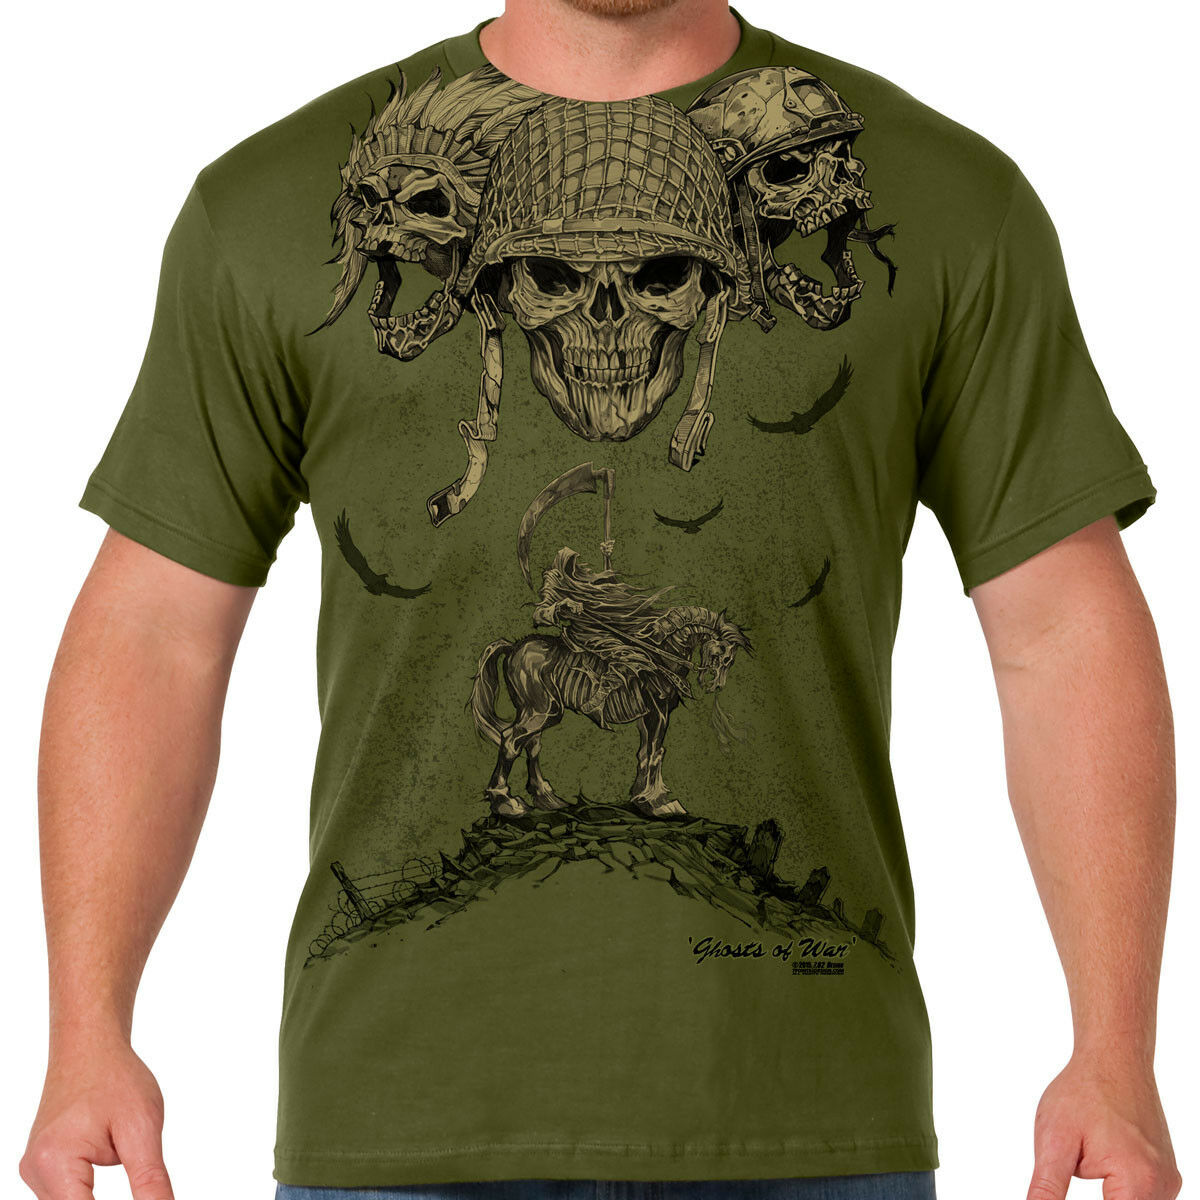 7.62 DESIGNS GHOSTS OF WAR T SHIRT CLOTHING FOR PATRIOTS AND MEN OF ARMS MEN'S